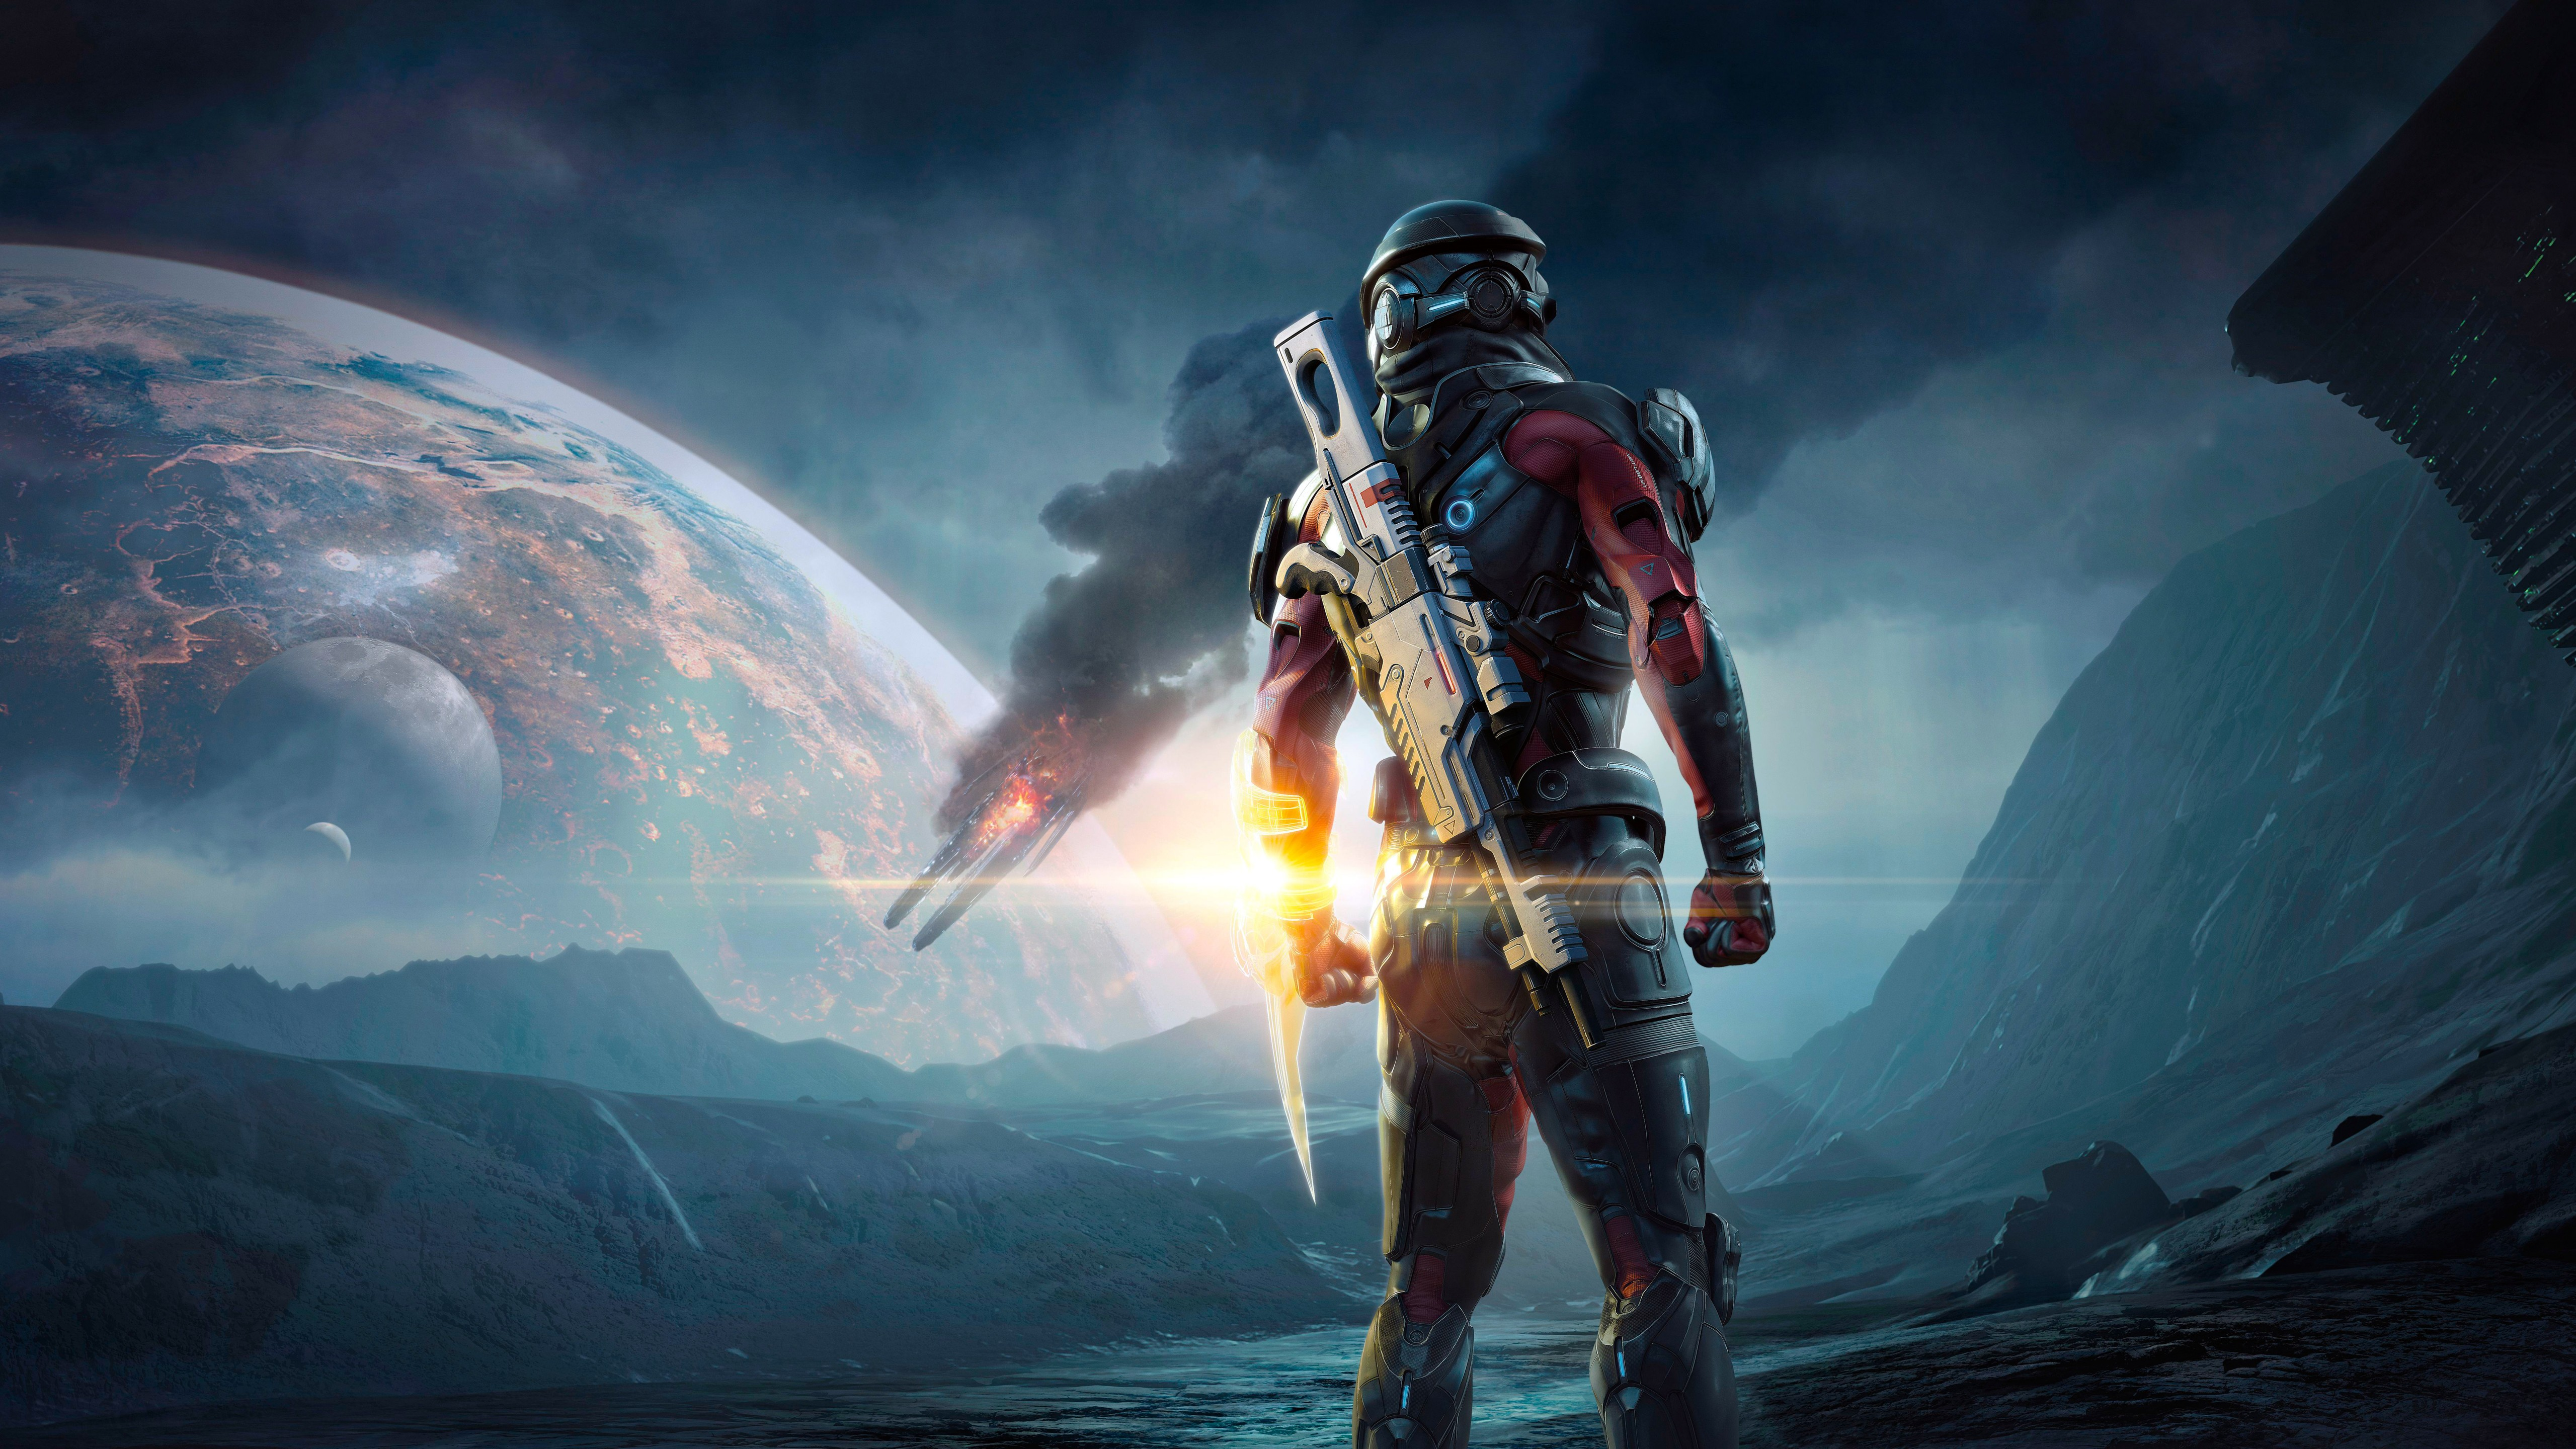 Android 3d Wallpaper Effect Mass Effect Andromeda 4k Wallpapers Hd Wallpapers Id